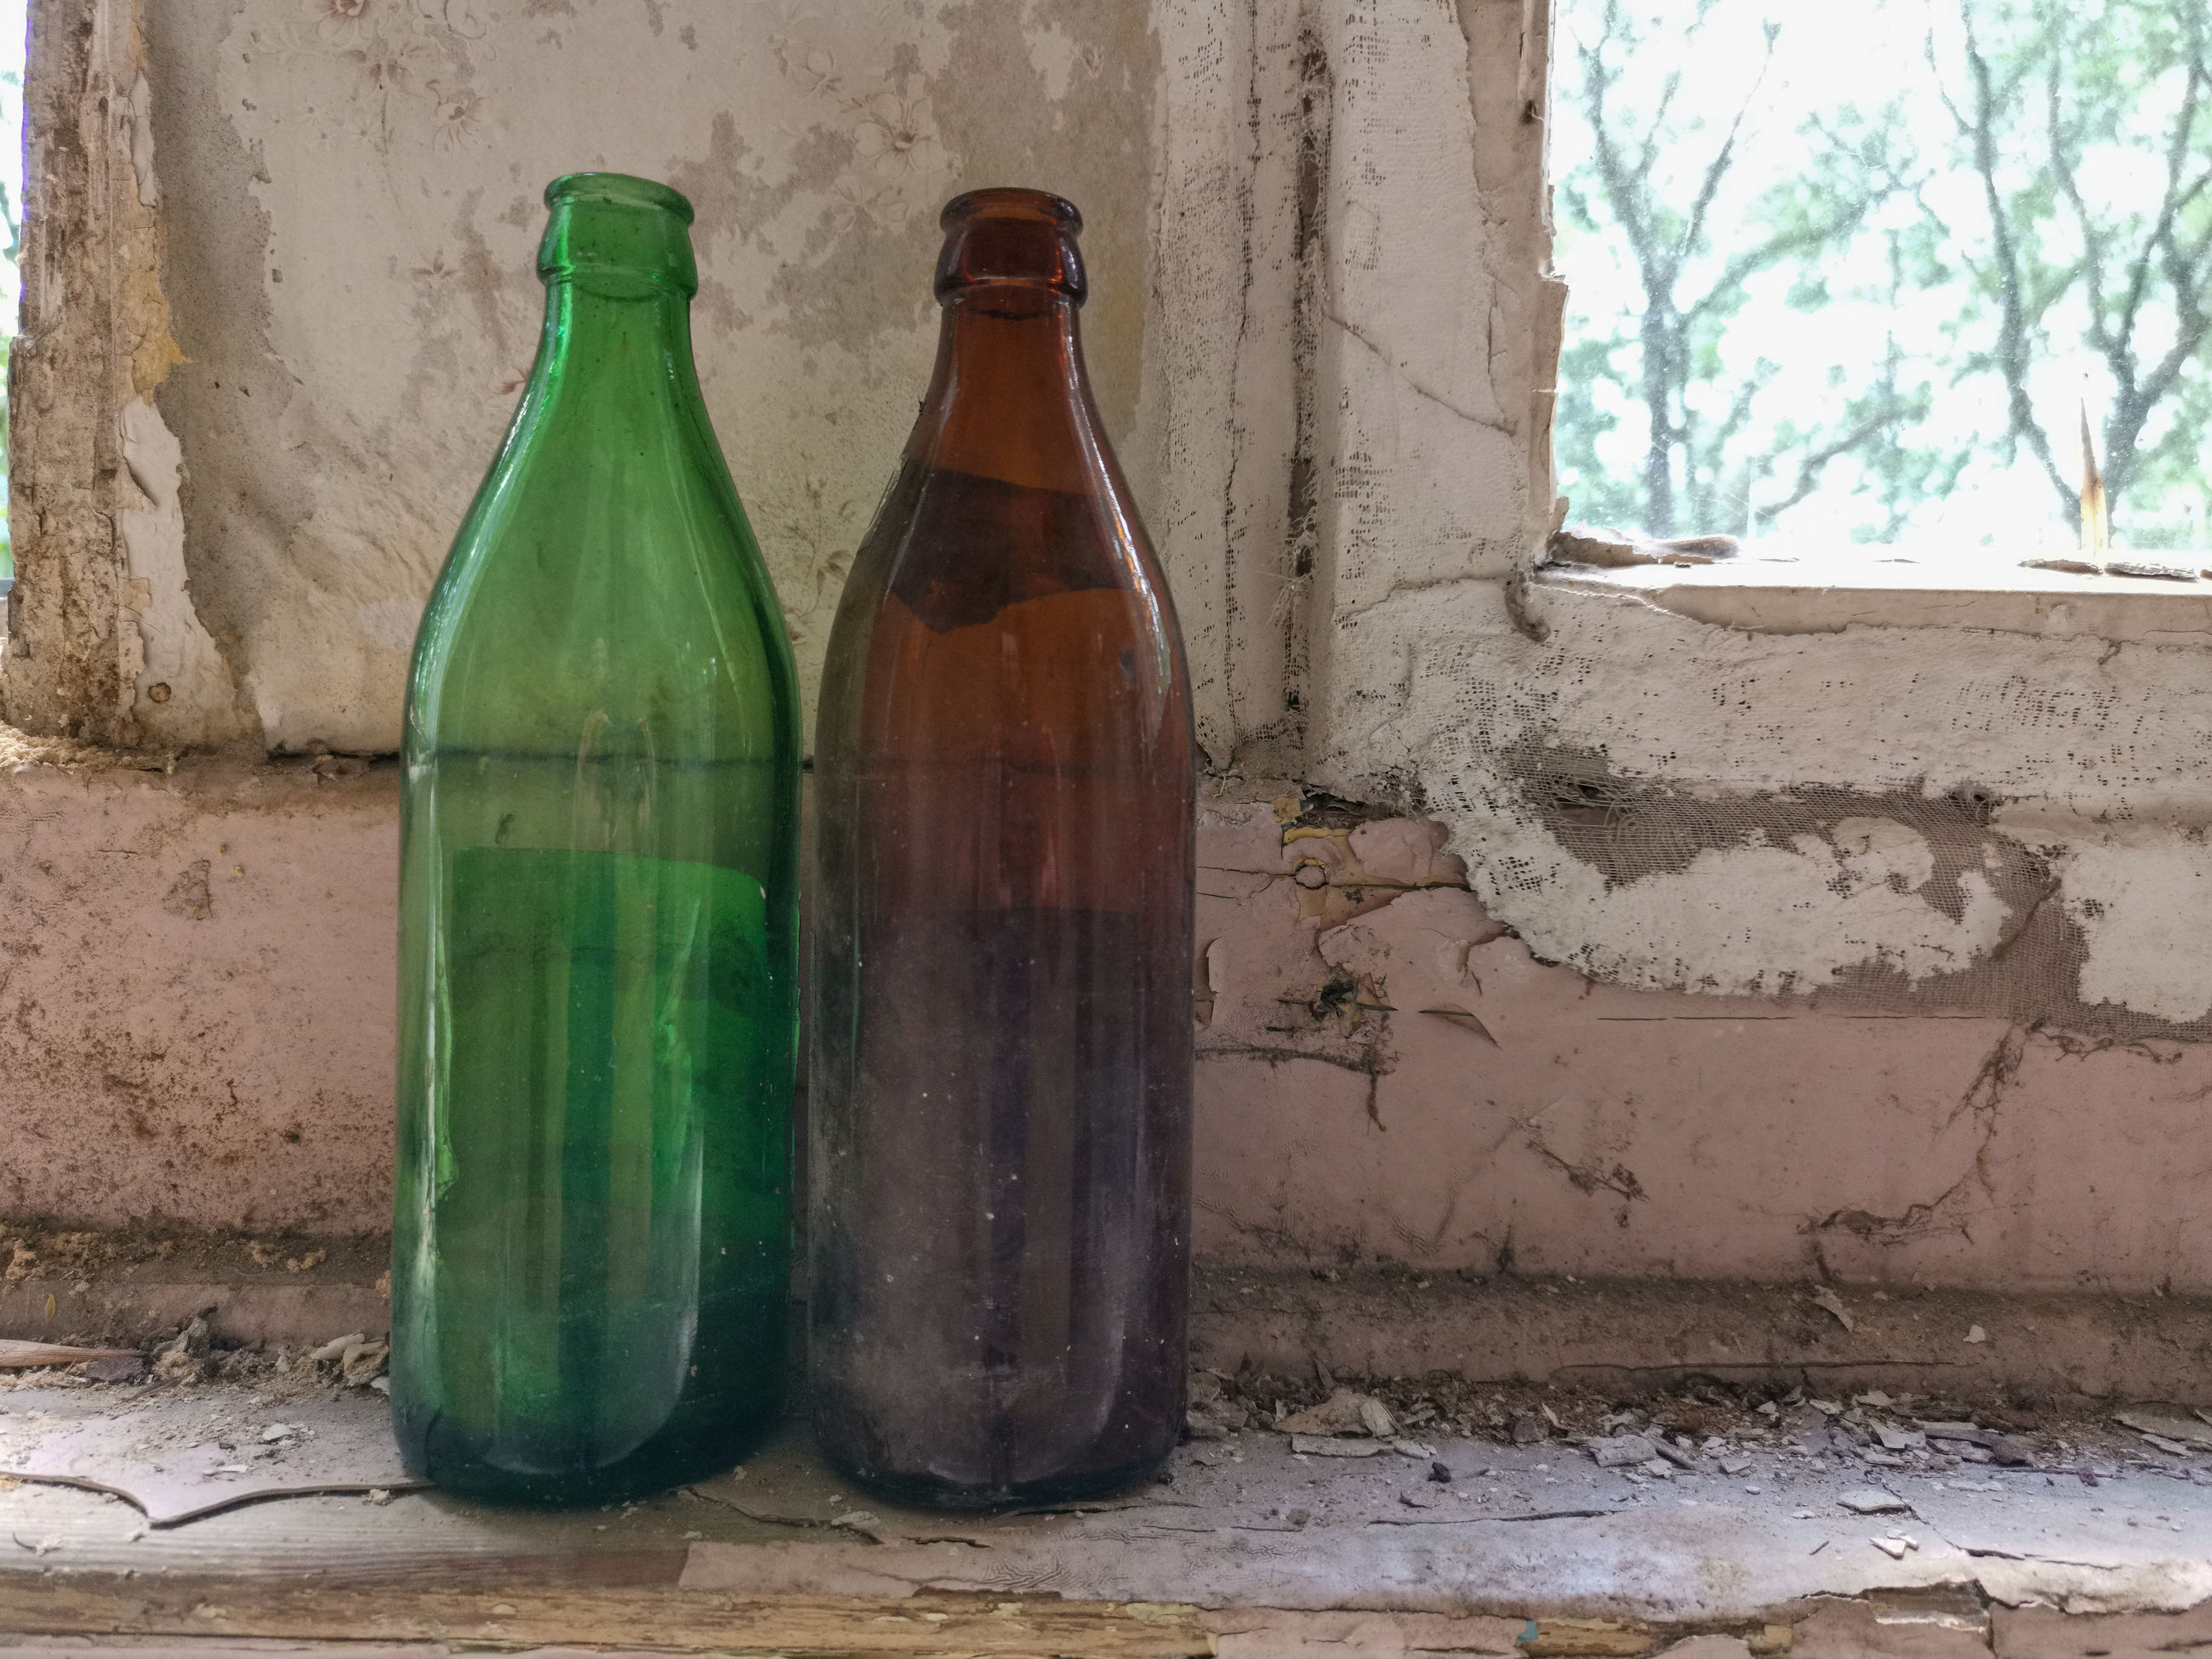 Close-up of empty bottles on windowsill against wall